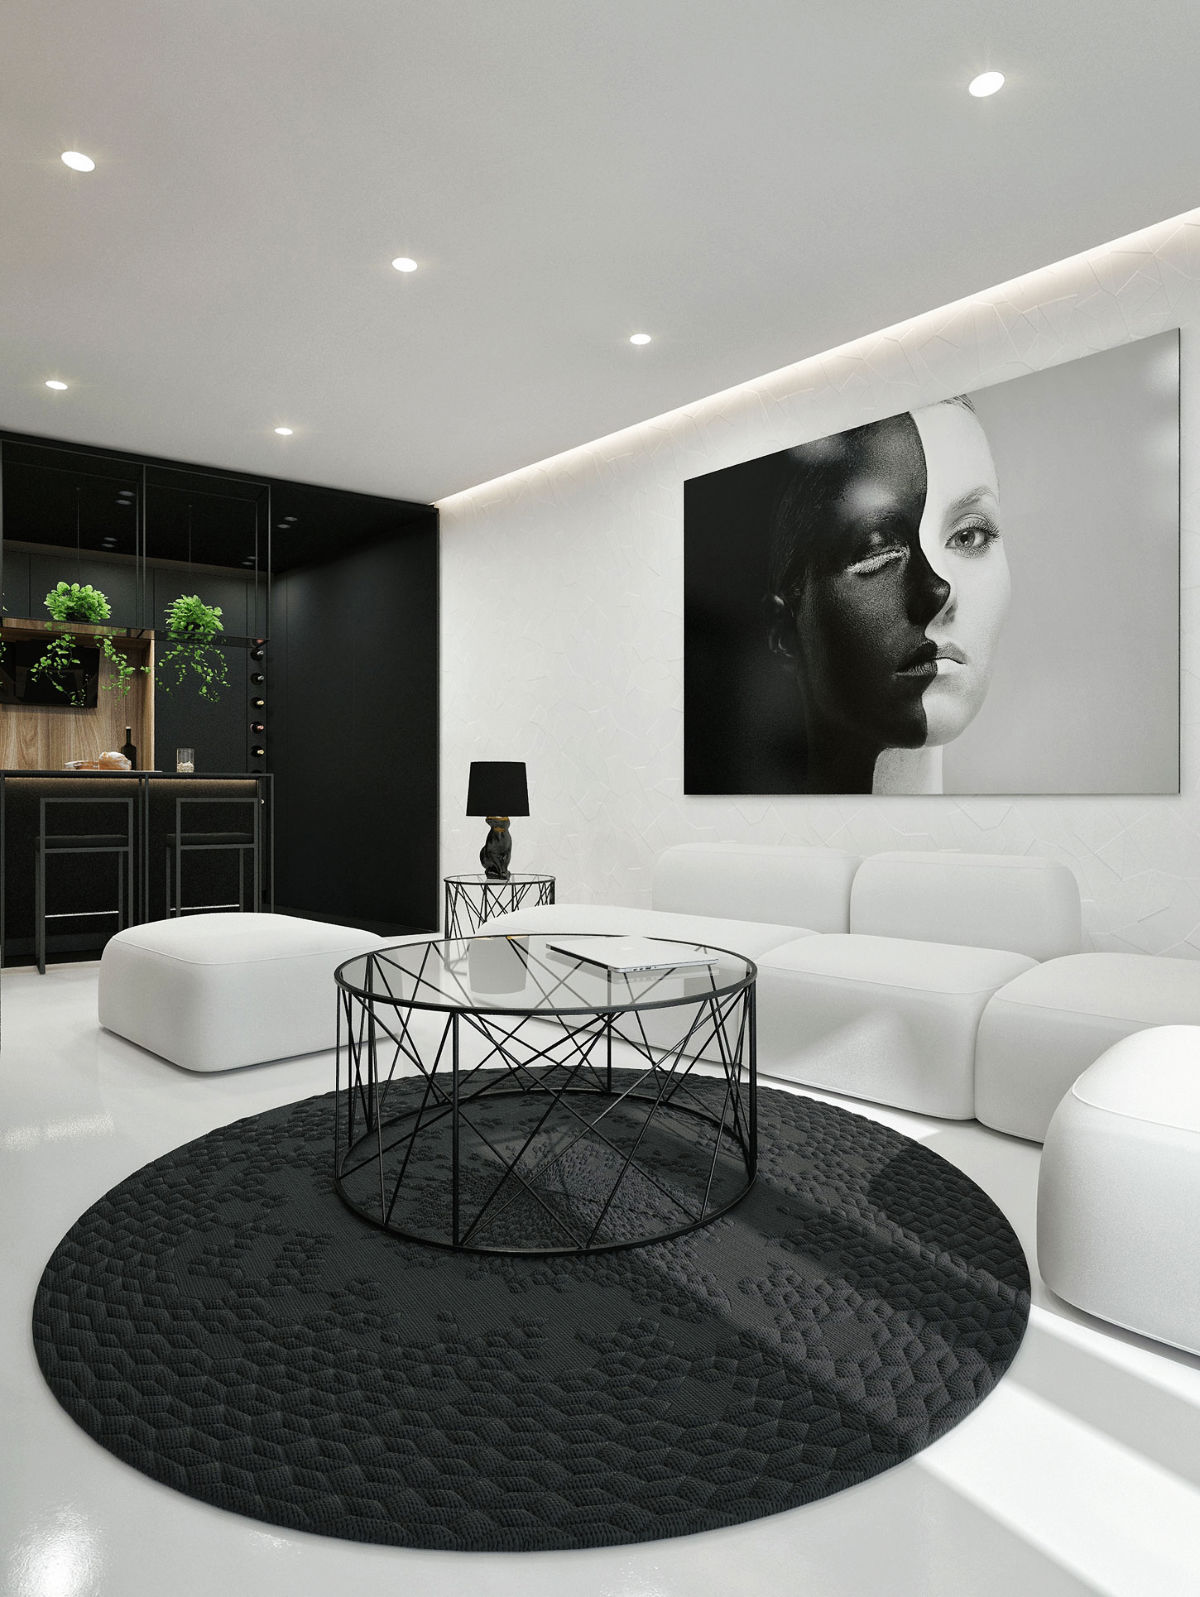 Living Room Ideas Model Photograph Round Rug White Sofa Barstools Hanging Plants Table Lamp Glass Coffee Table Ceiling Lights - 30 black white living rooms that work their monochrome magic